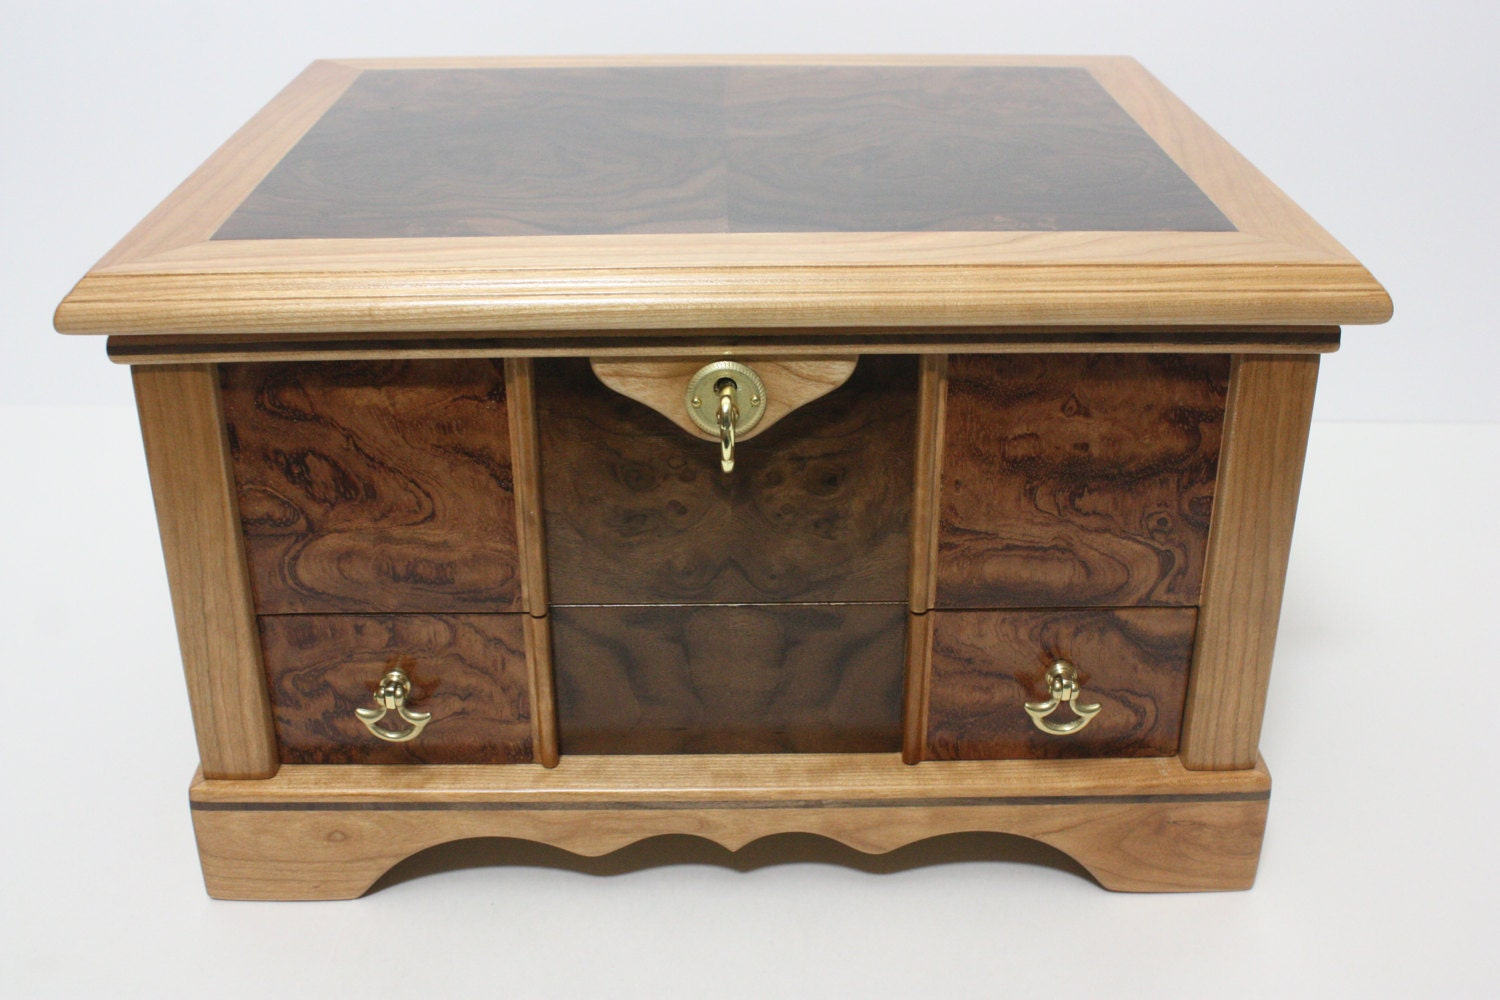 Large Locking Handmade Wood Box with Locking Drawer